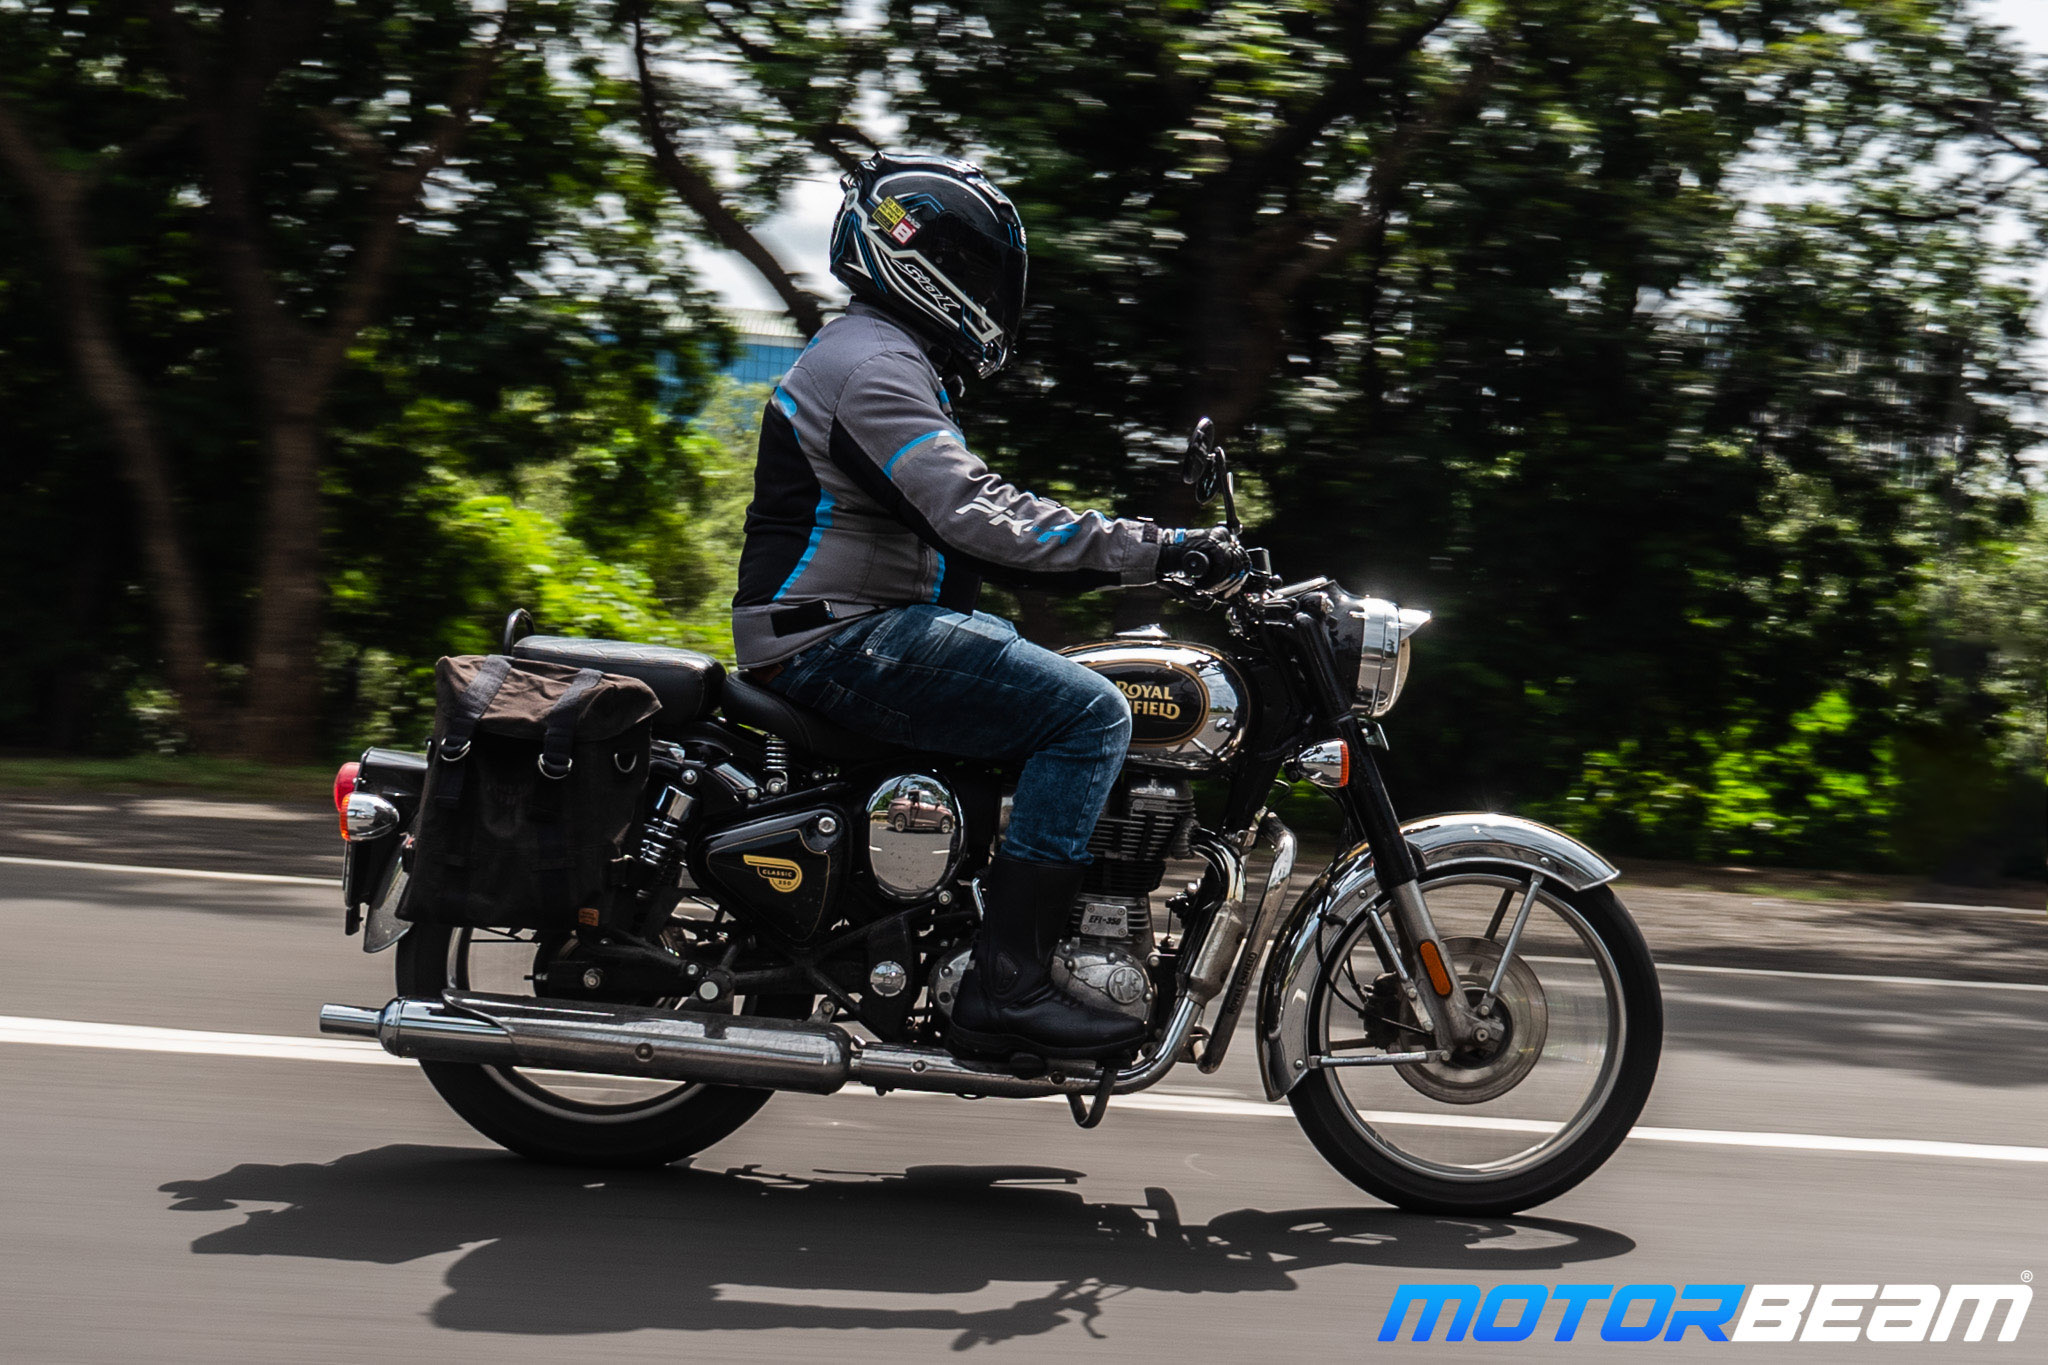 2020 Royal Enfield Classic 350 Review 5